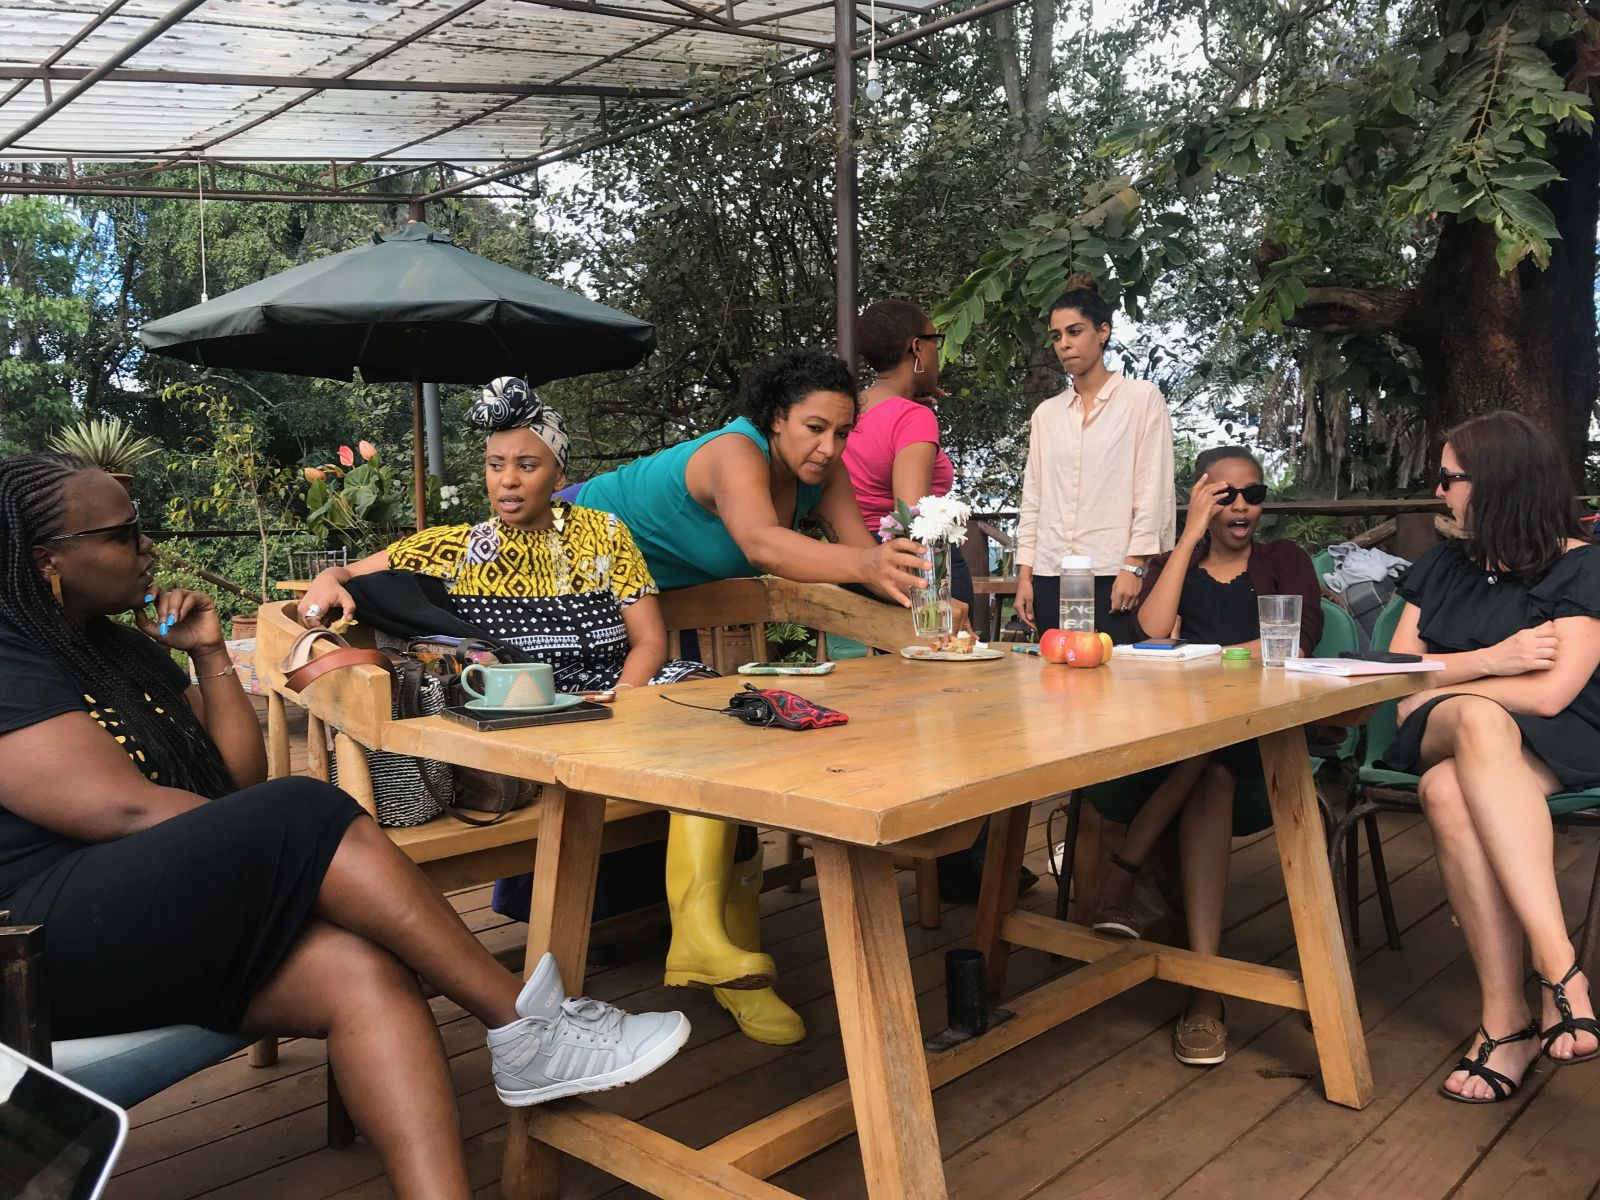 Feminist leaders assembling for gathering, Feminist Governance: A Nairobi perspective. Seven women, mostly women of colour, sit and stand talking together on a balcony with trees beyond.